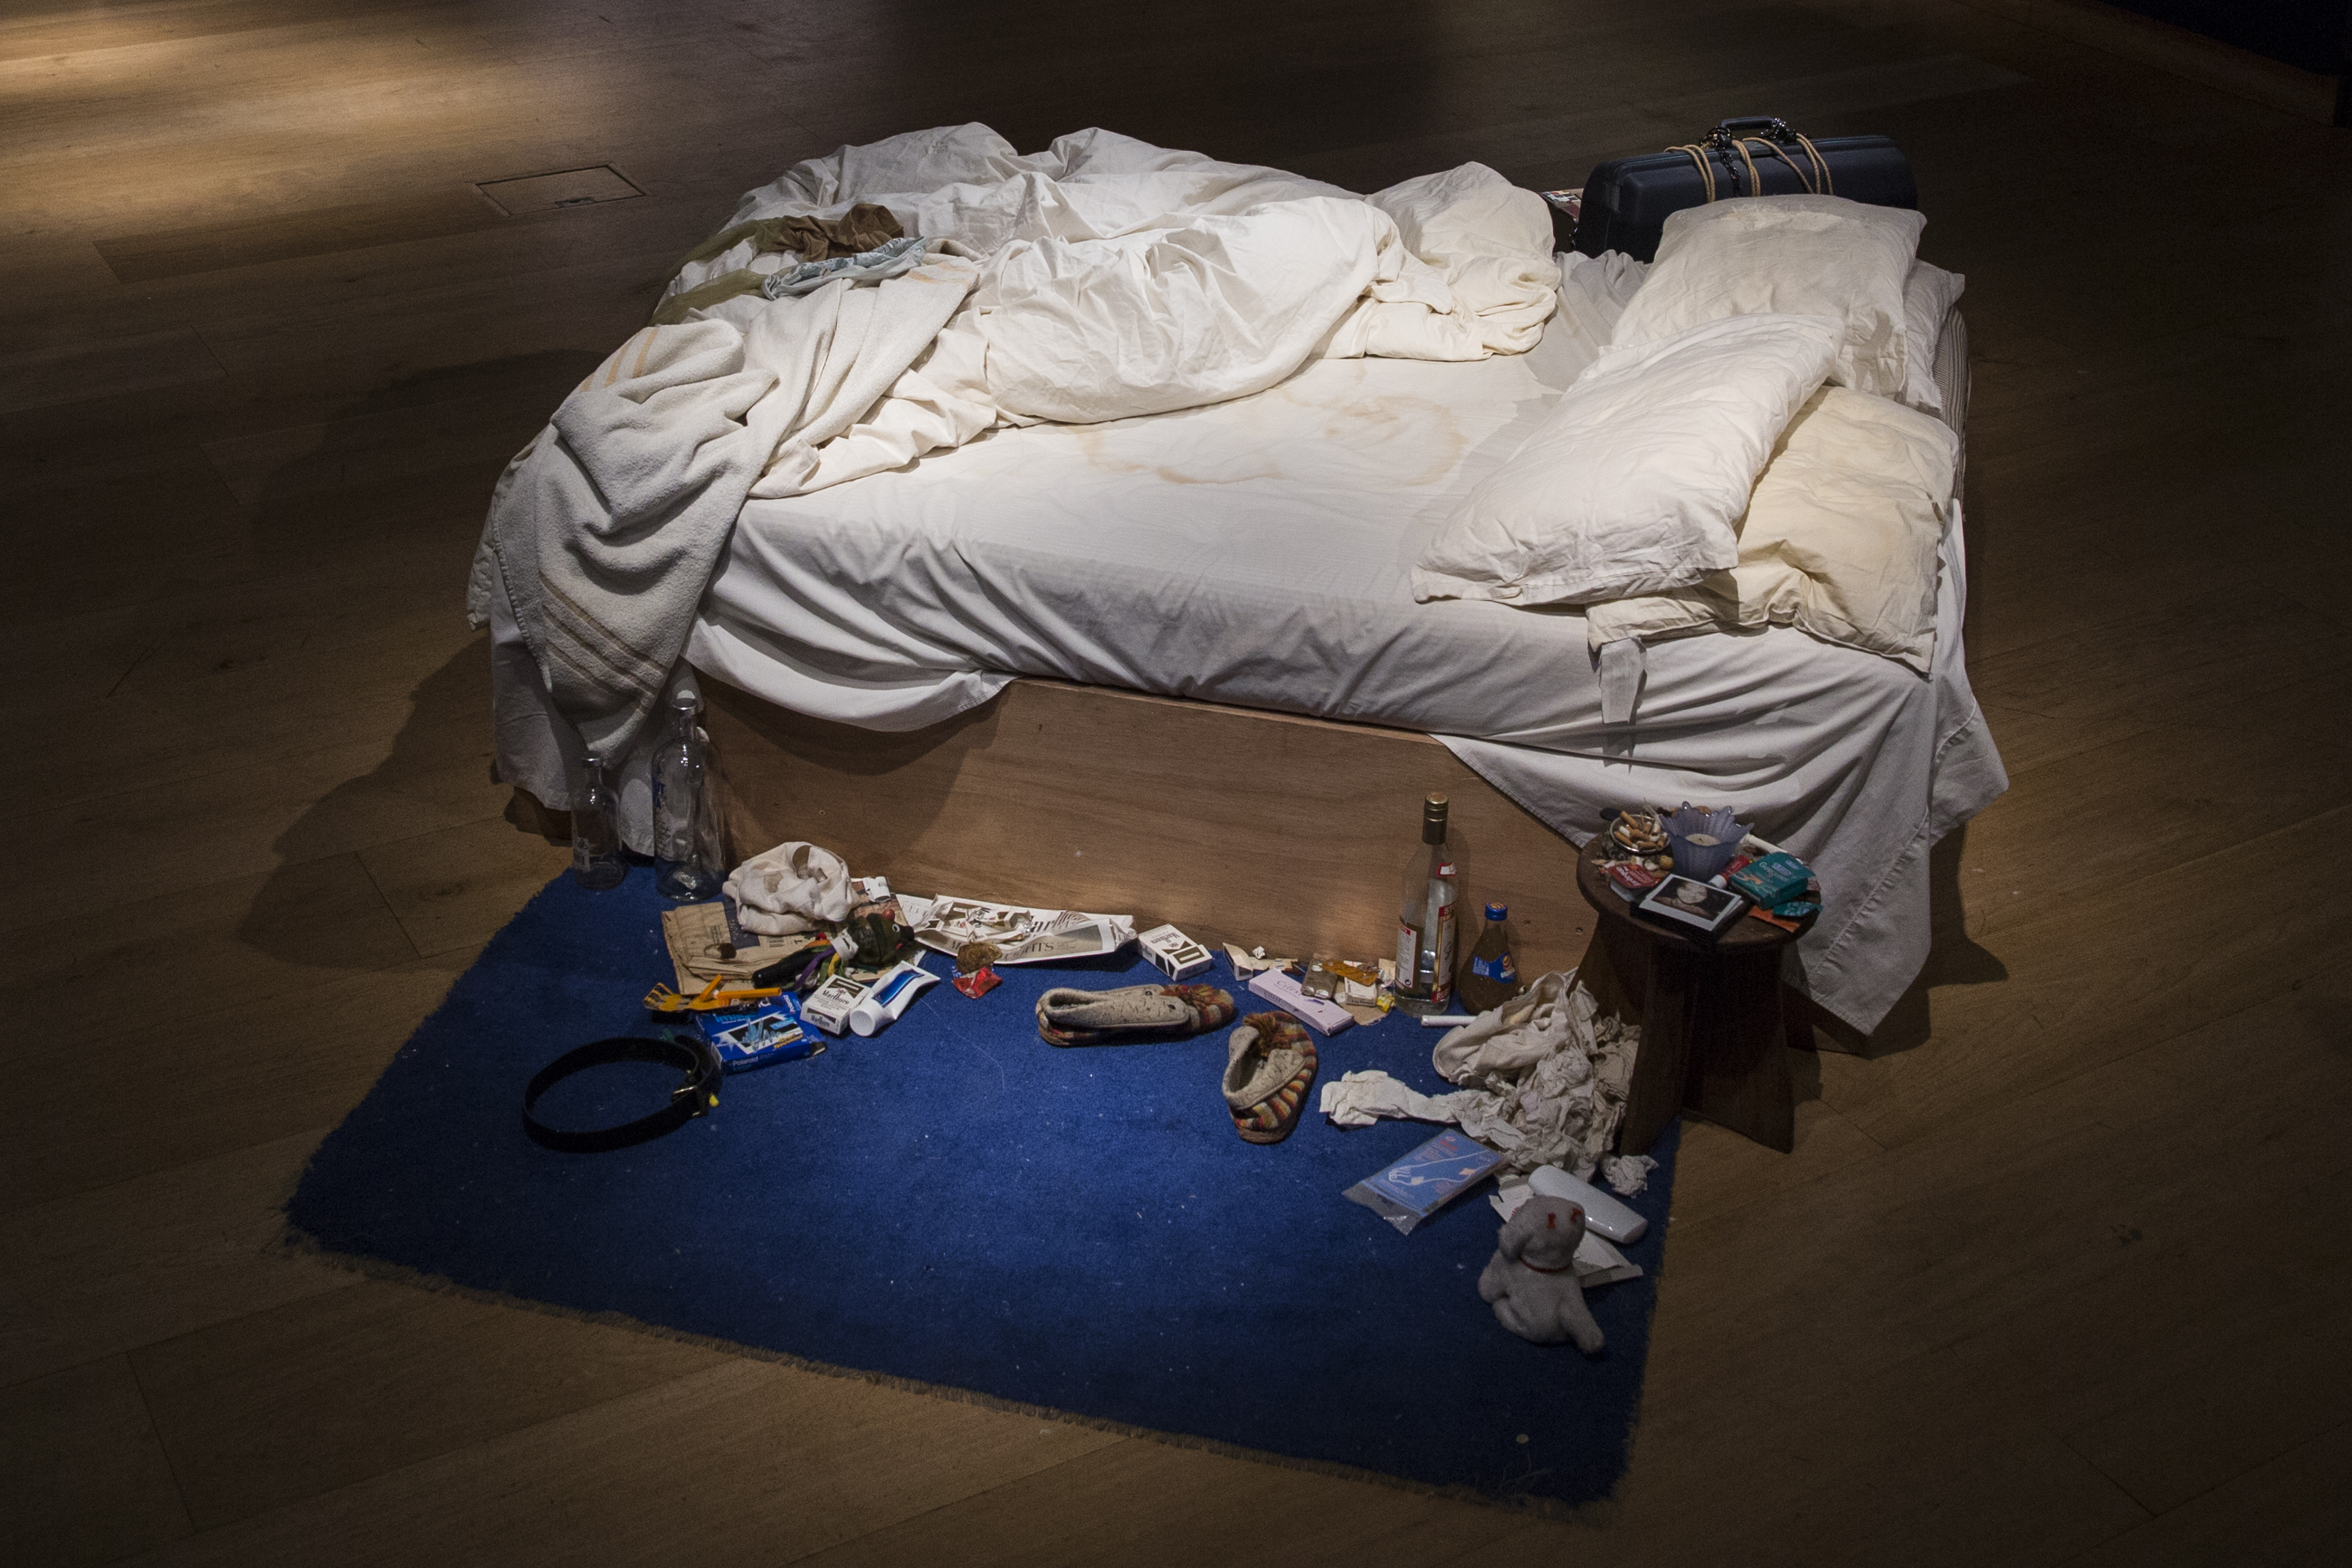 Tracy Emin's 1998 piece My Bed on display at Christie's in London on June 27, 2014